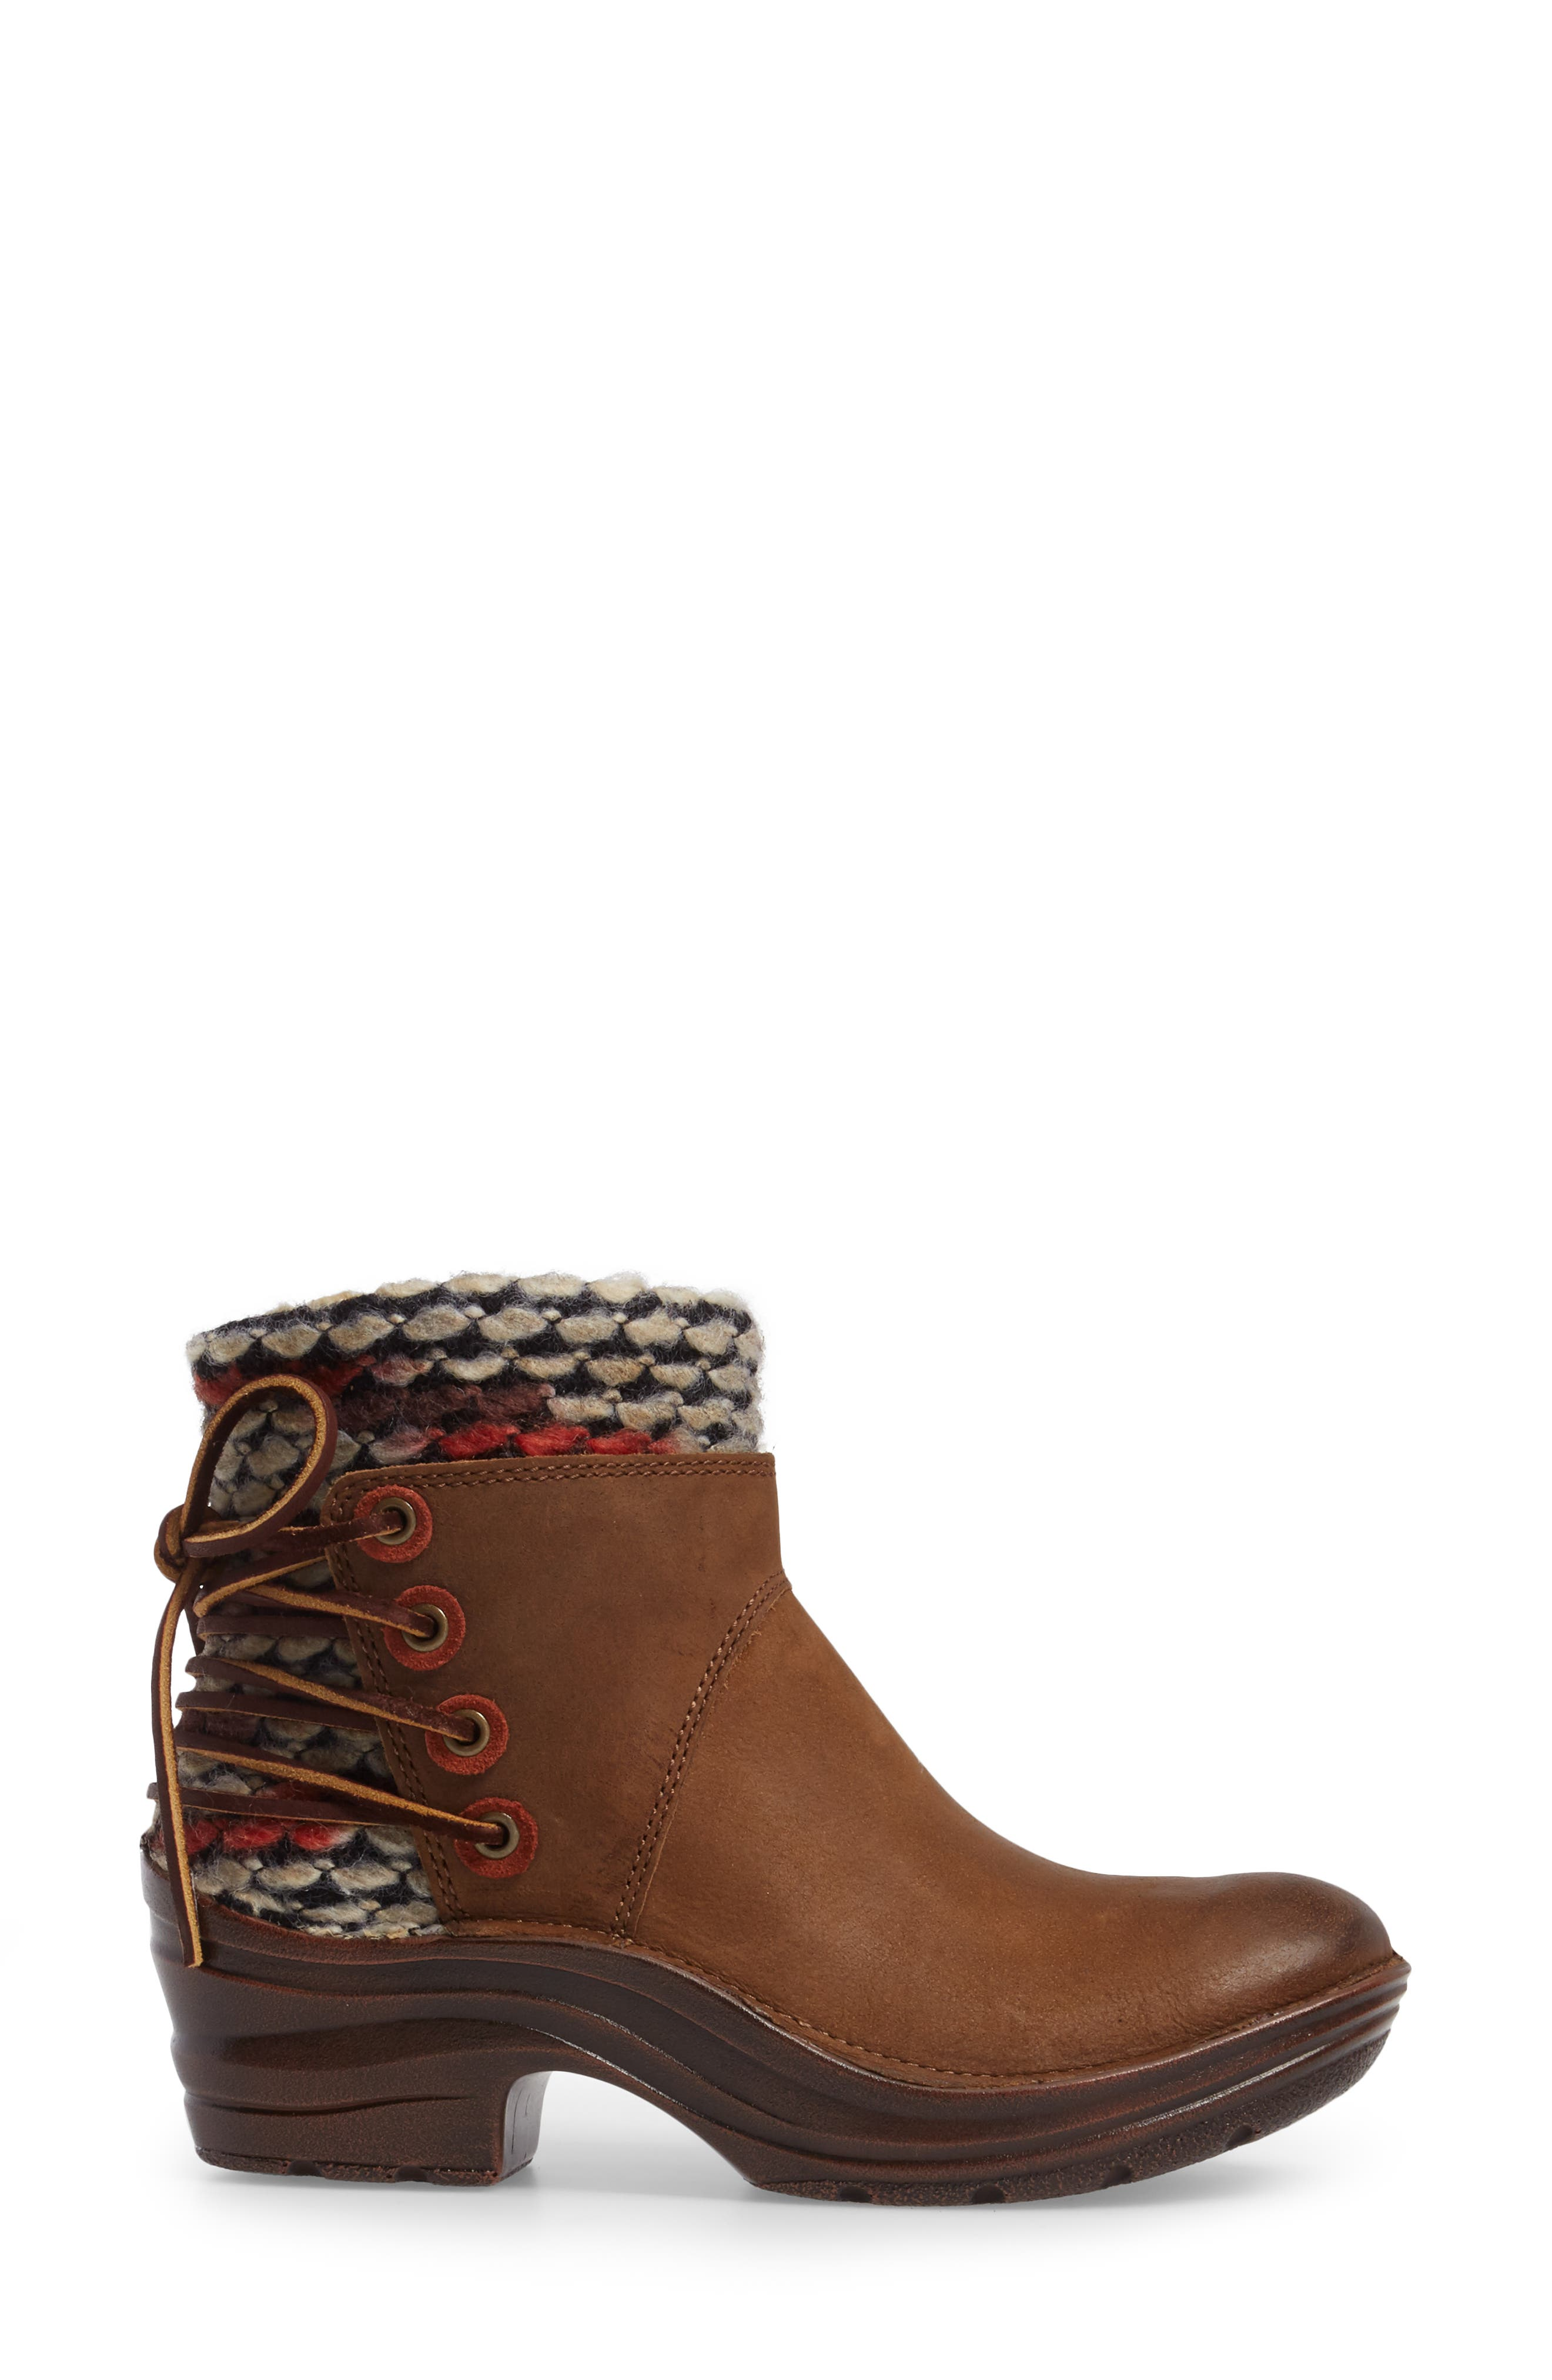 Reign Bootie,                             Alternate thumbnail 3, color,                             Dark Brown Leather